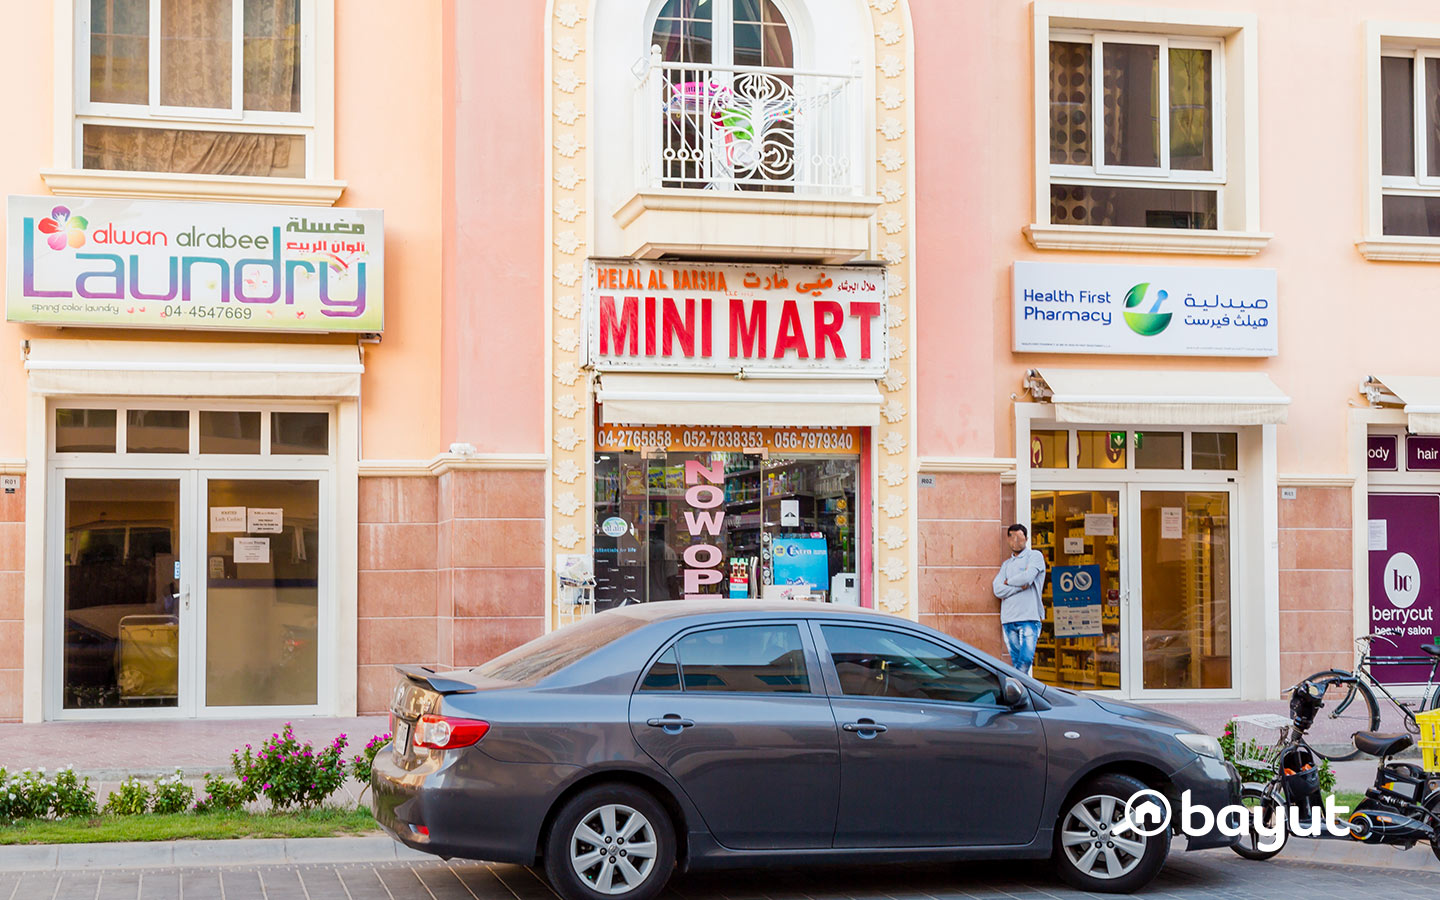 There are shopping outlets to cater to the community in JVC